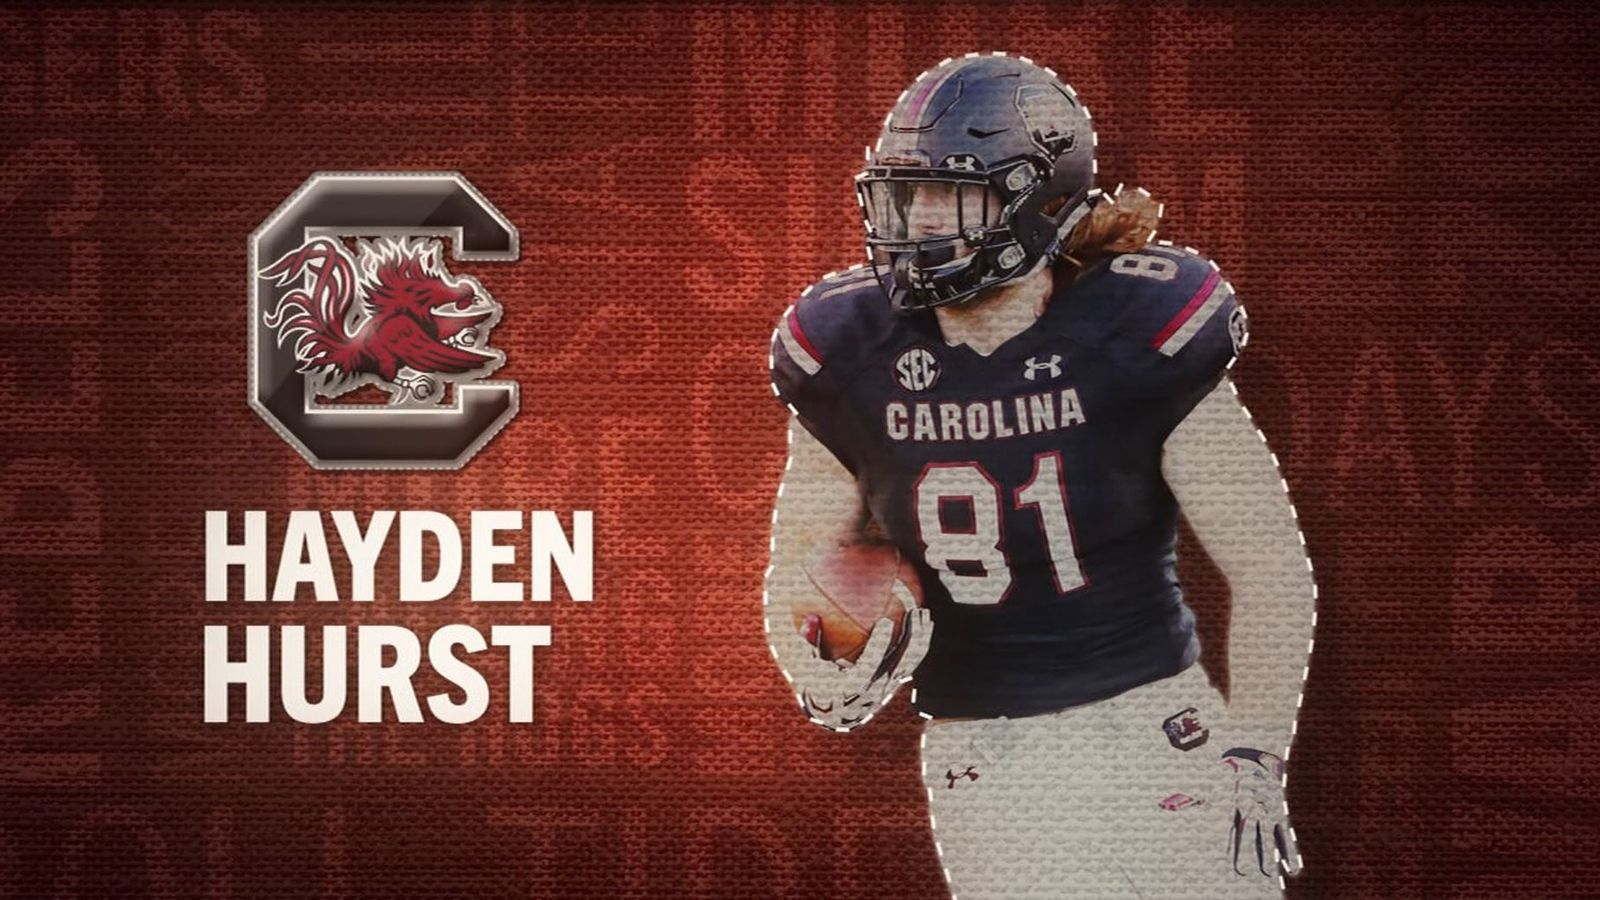 I am the SEC: South Carolina's Hayden Hurst